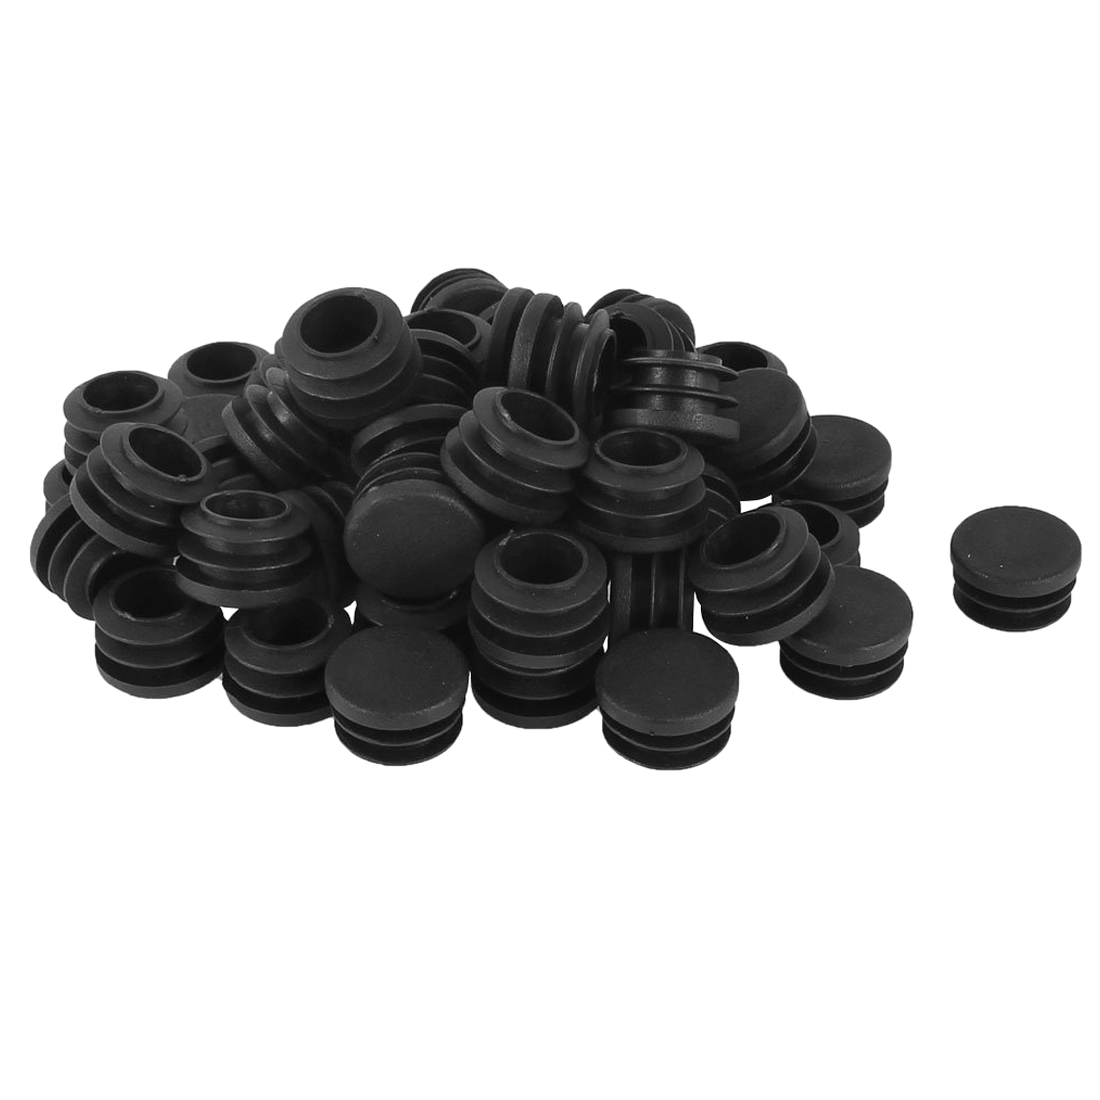 Plastic Round Cap Chair Table Legs Ribbed Tube Insert 22mm Dia 50 Pcs rubber round table foot cover protector 8mm inner dia 24 pcs